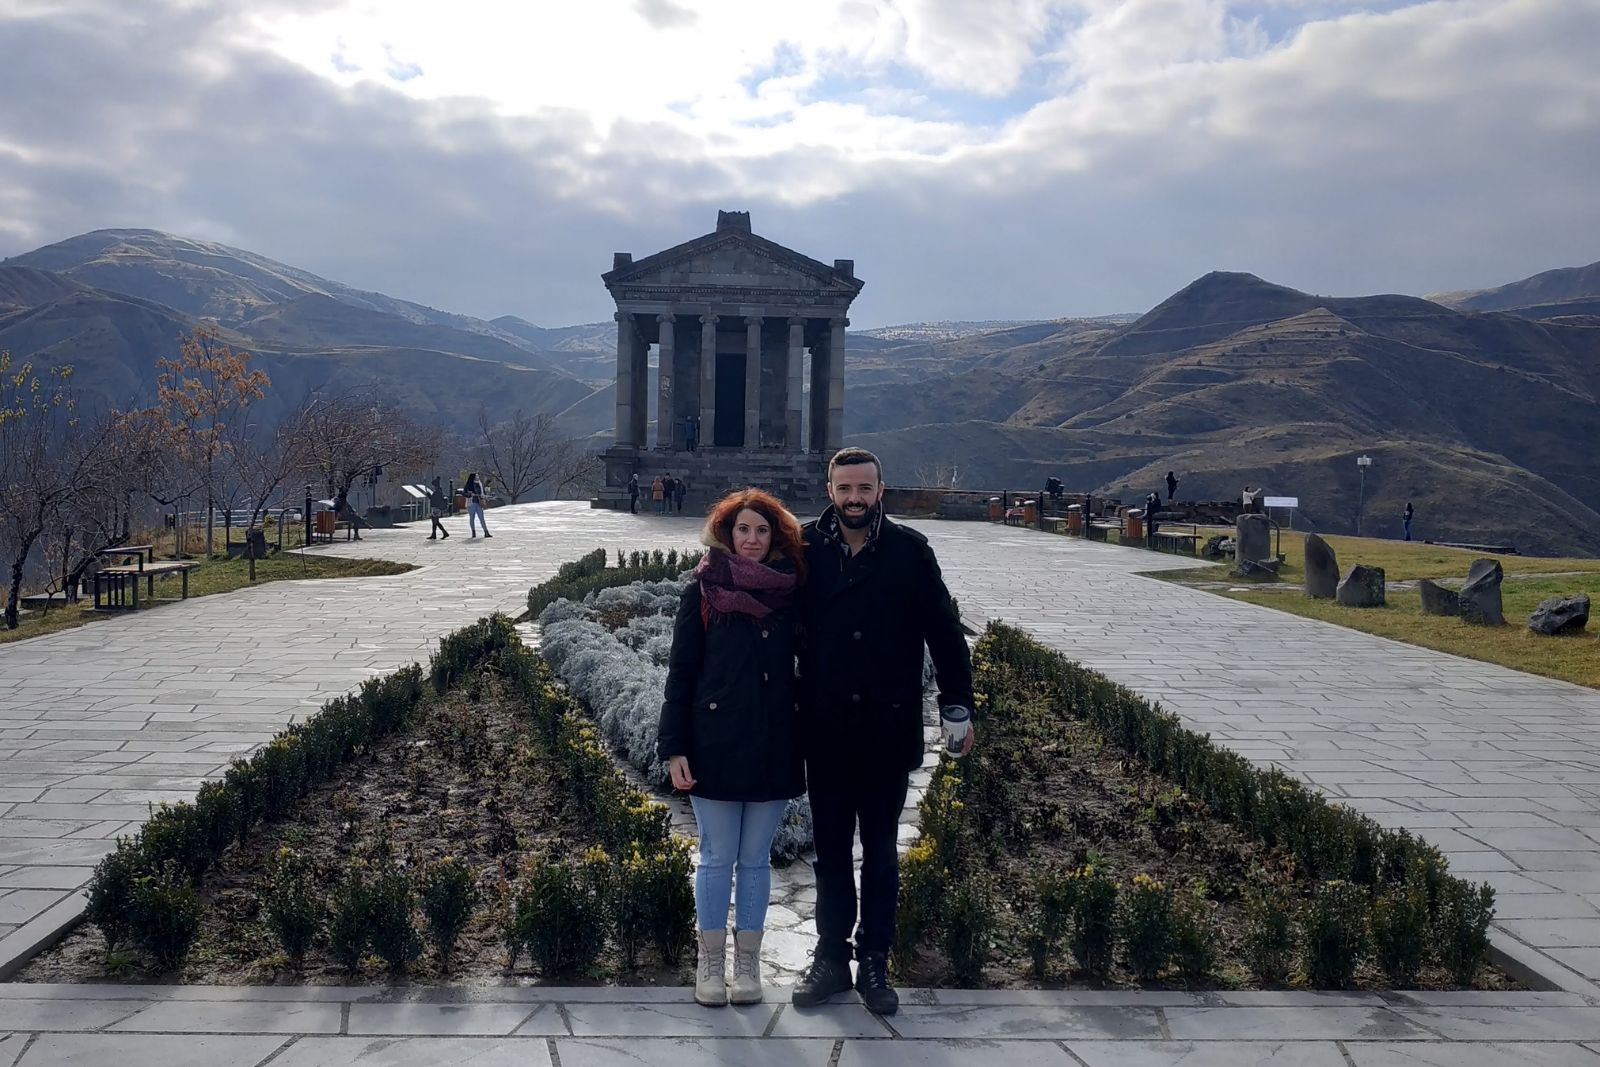 Participants of Russian language winter school 2018 Valentina Bernardi and Germán Moreno González at Garni temple